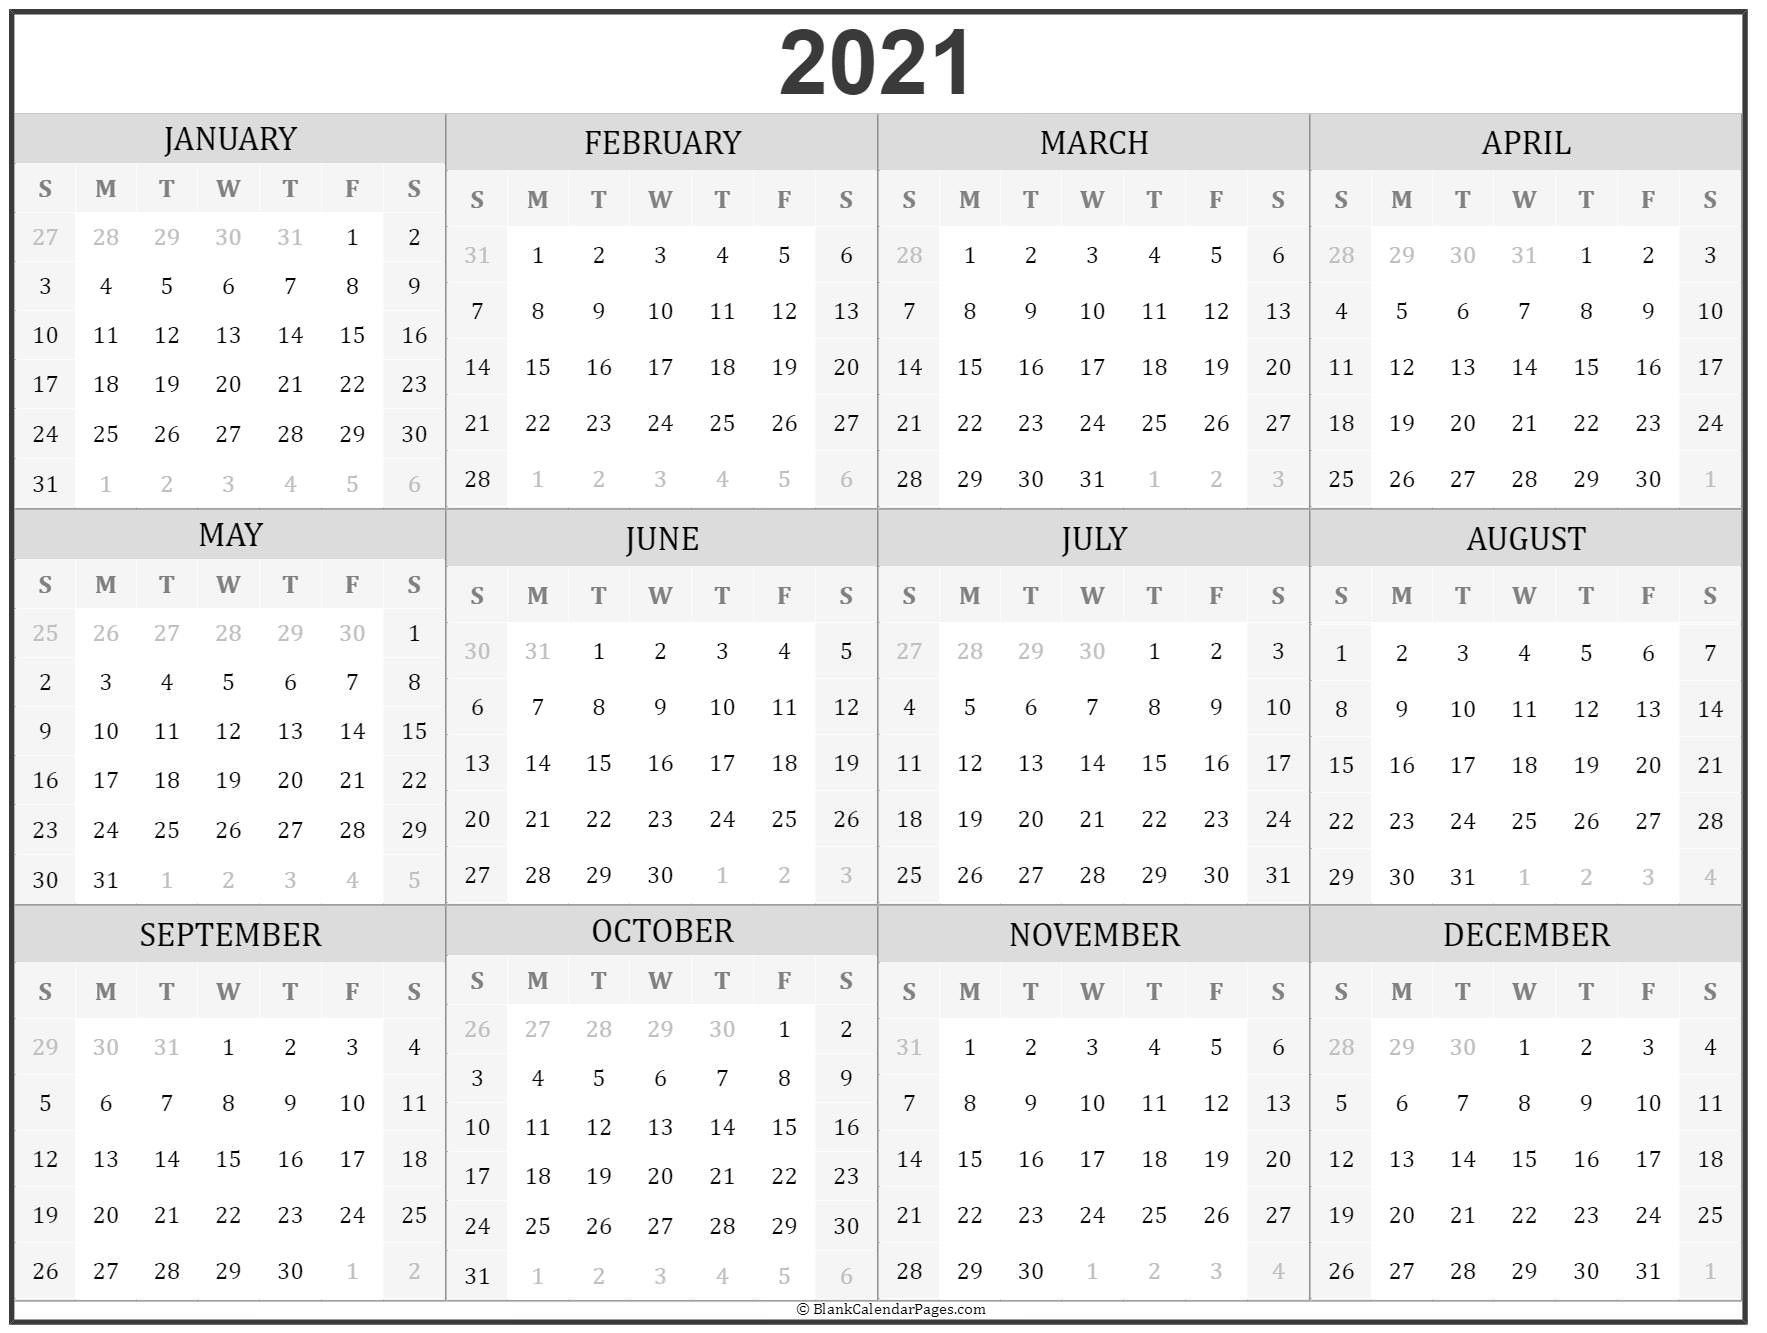 2021 Yearly Calendar Template Printable – Welcome For You To in 2021 Printable Calendar With Boxes Yearly